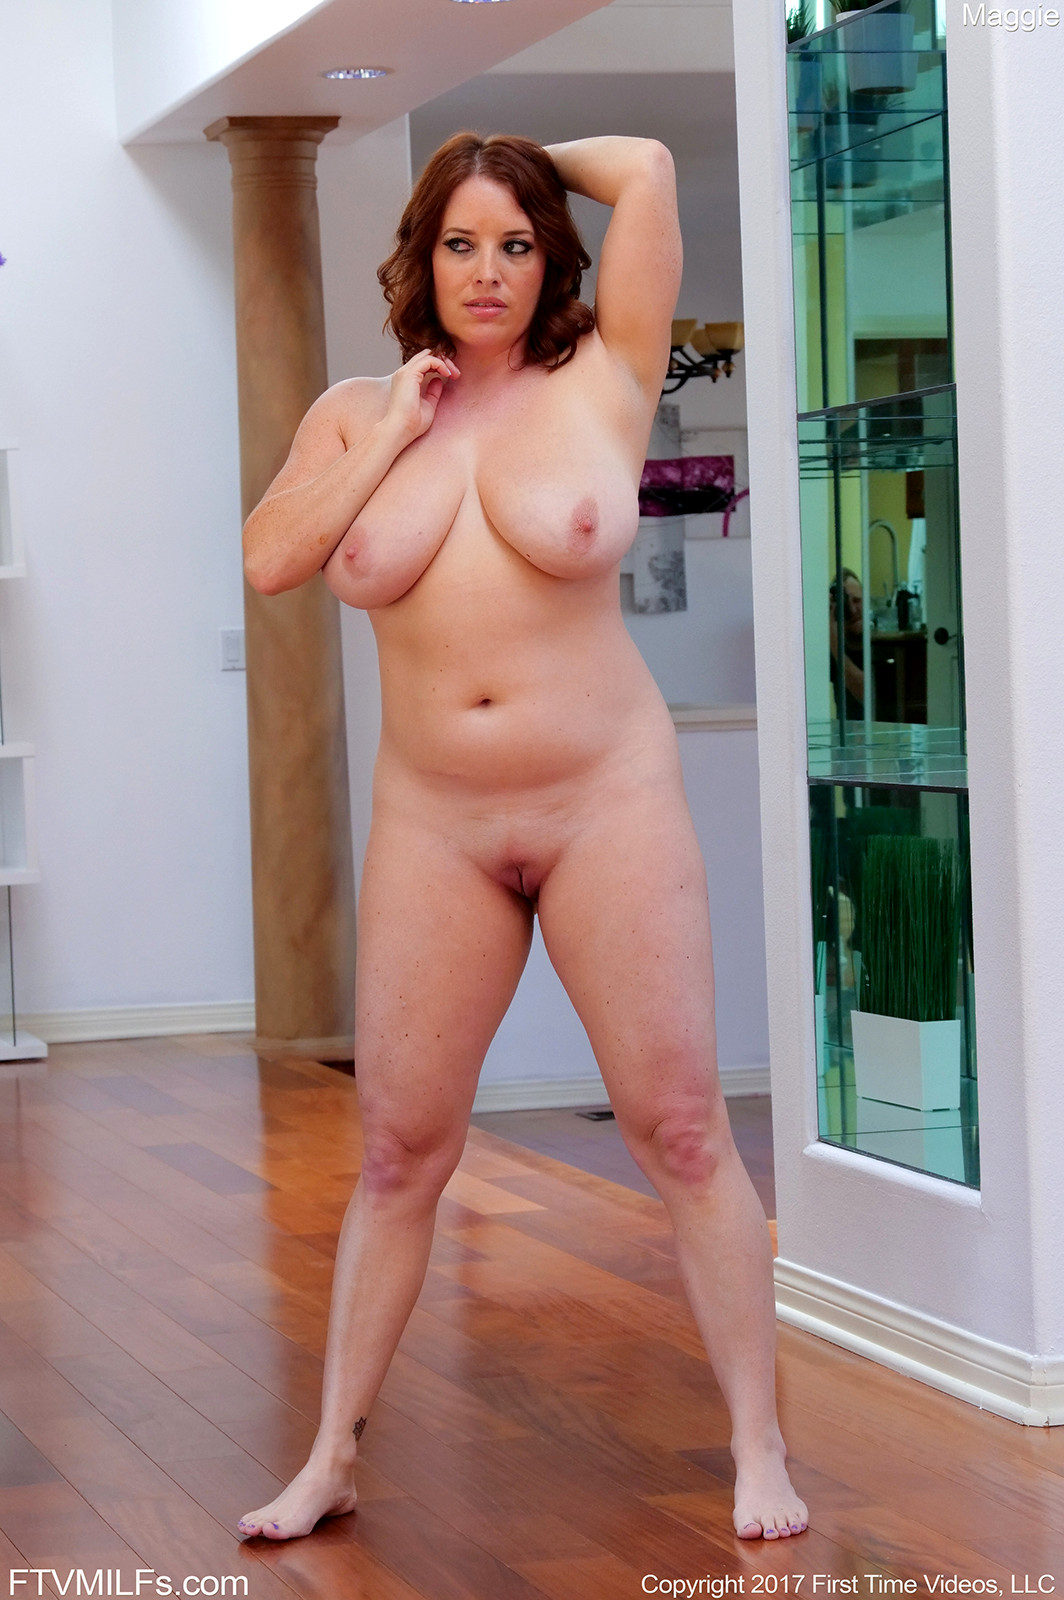 Babe Today Ftv Milfs Maggie Green Naked Mature Cutie Porn Pics-4101